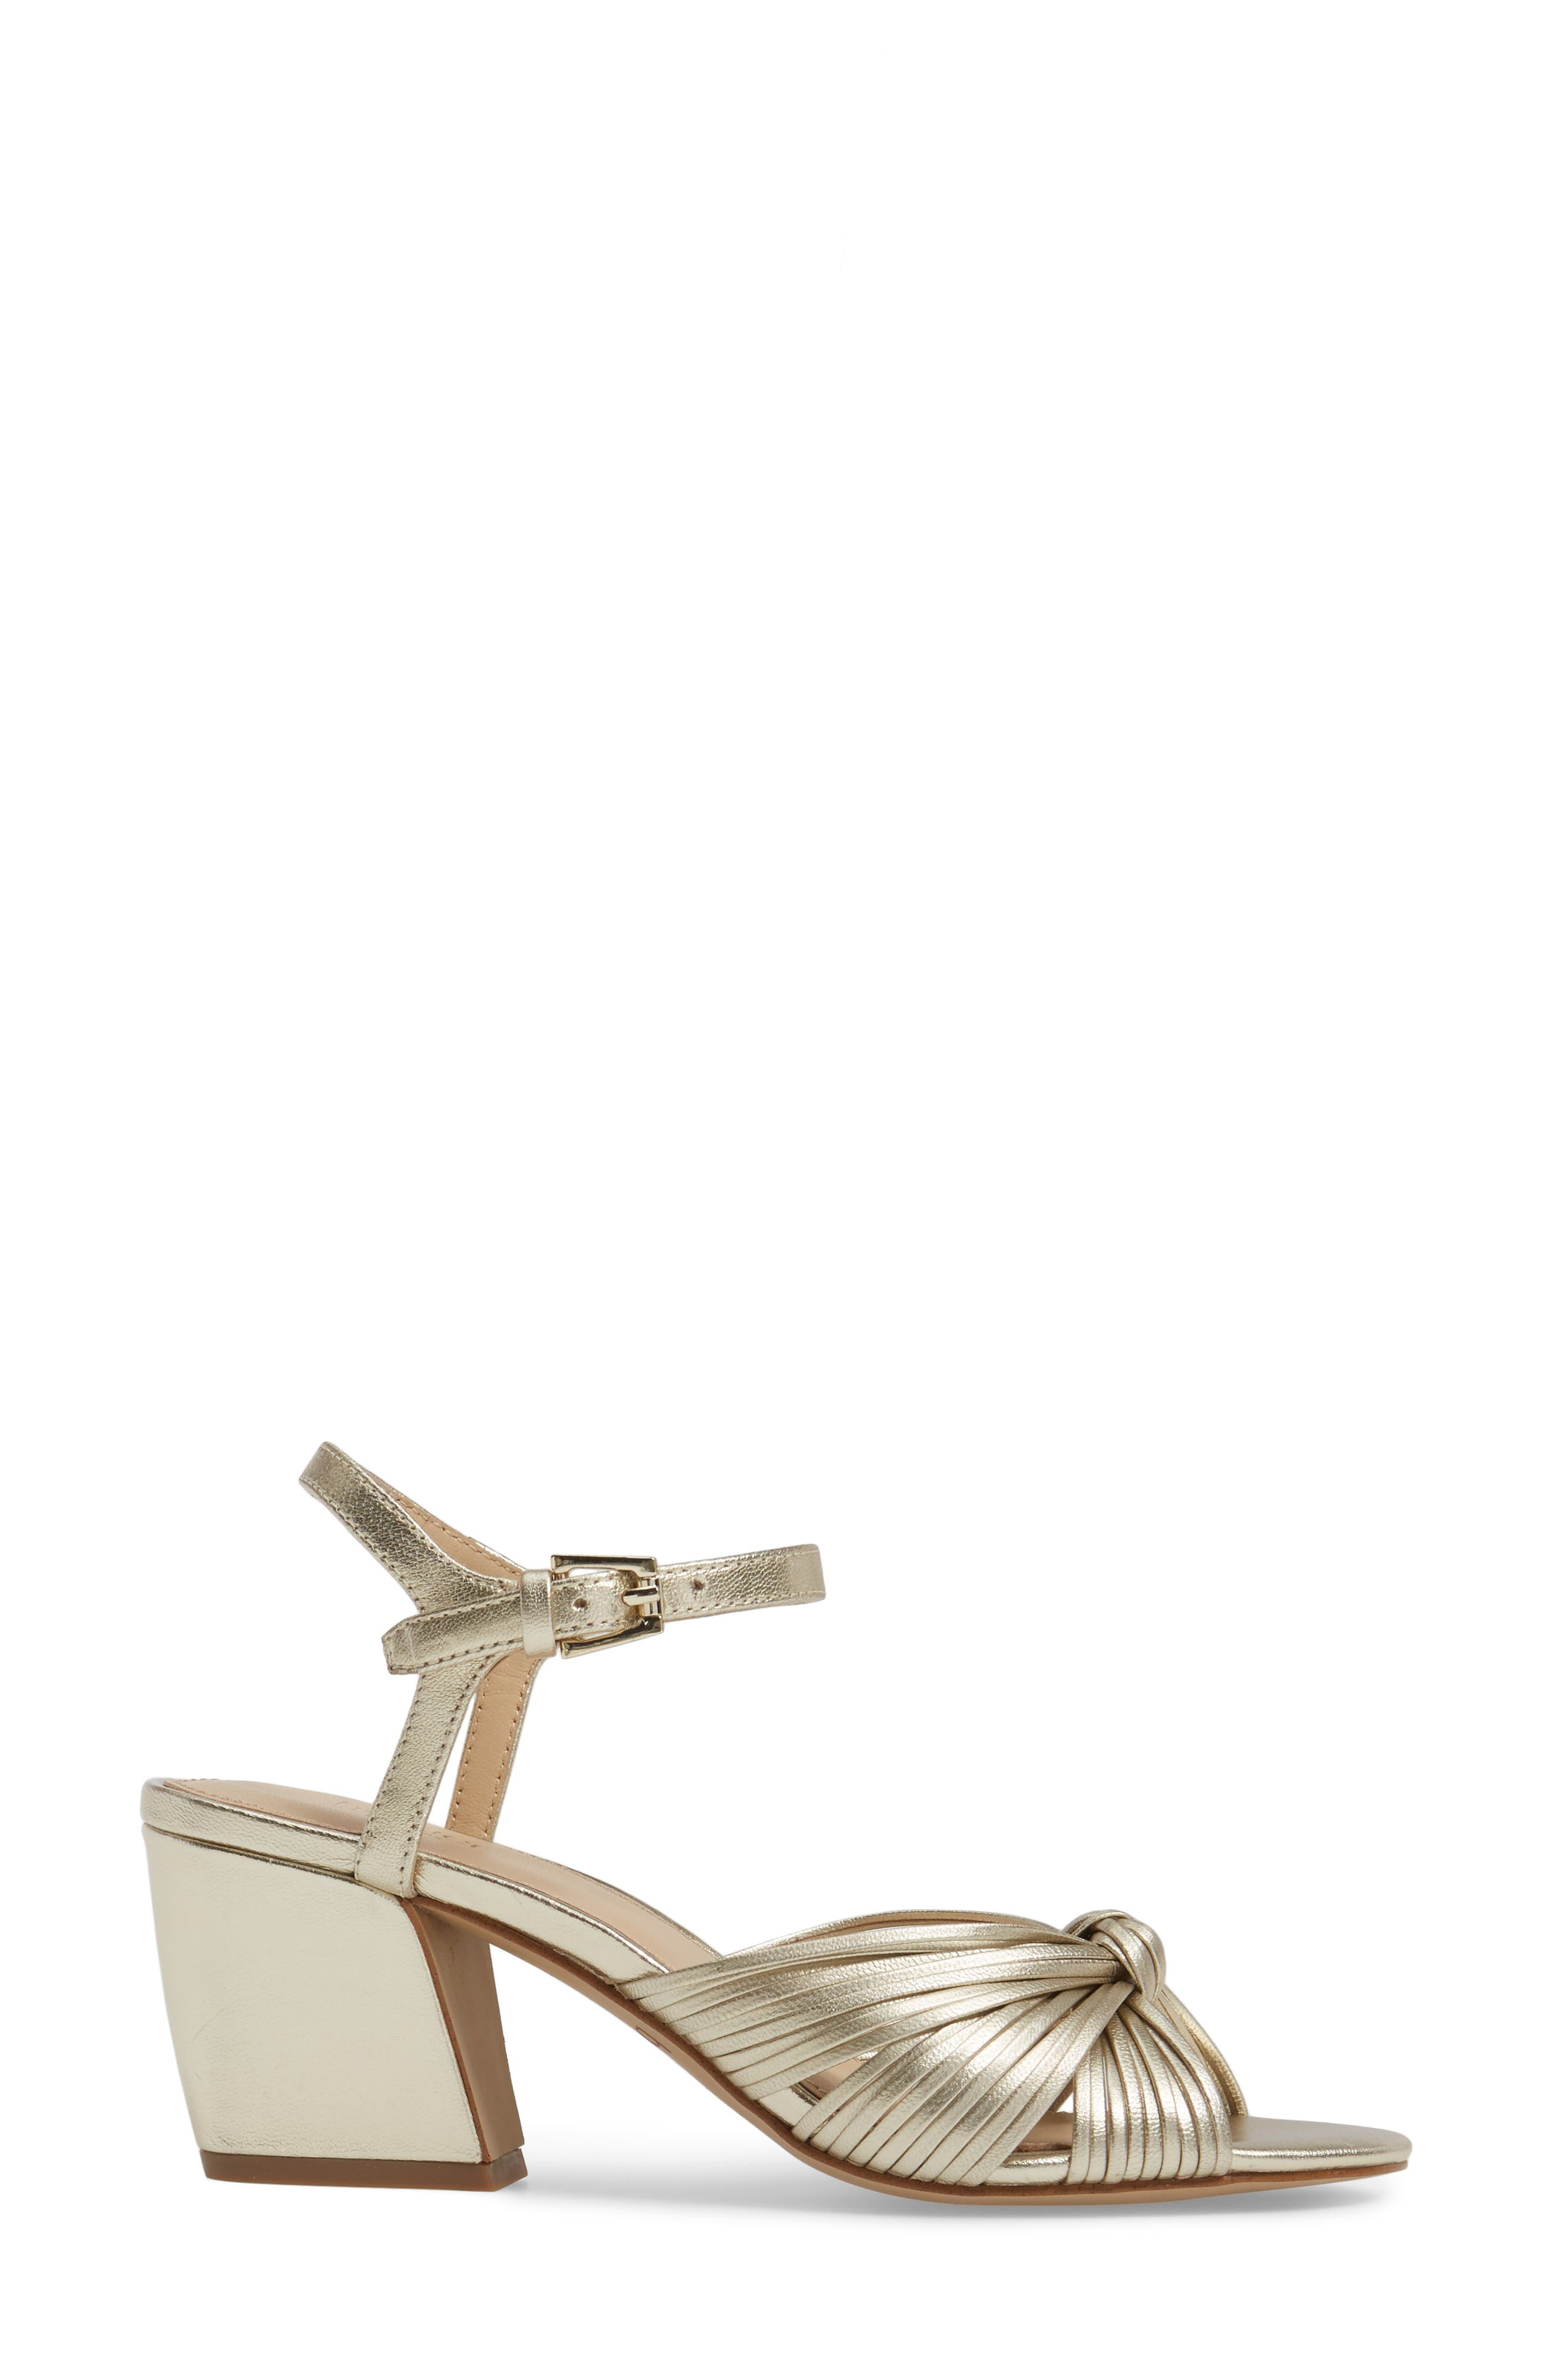 Patsy Block Heel Sandal,                             Alternate thumbnail 3, color,                             100